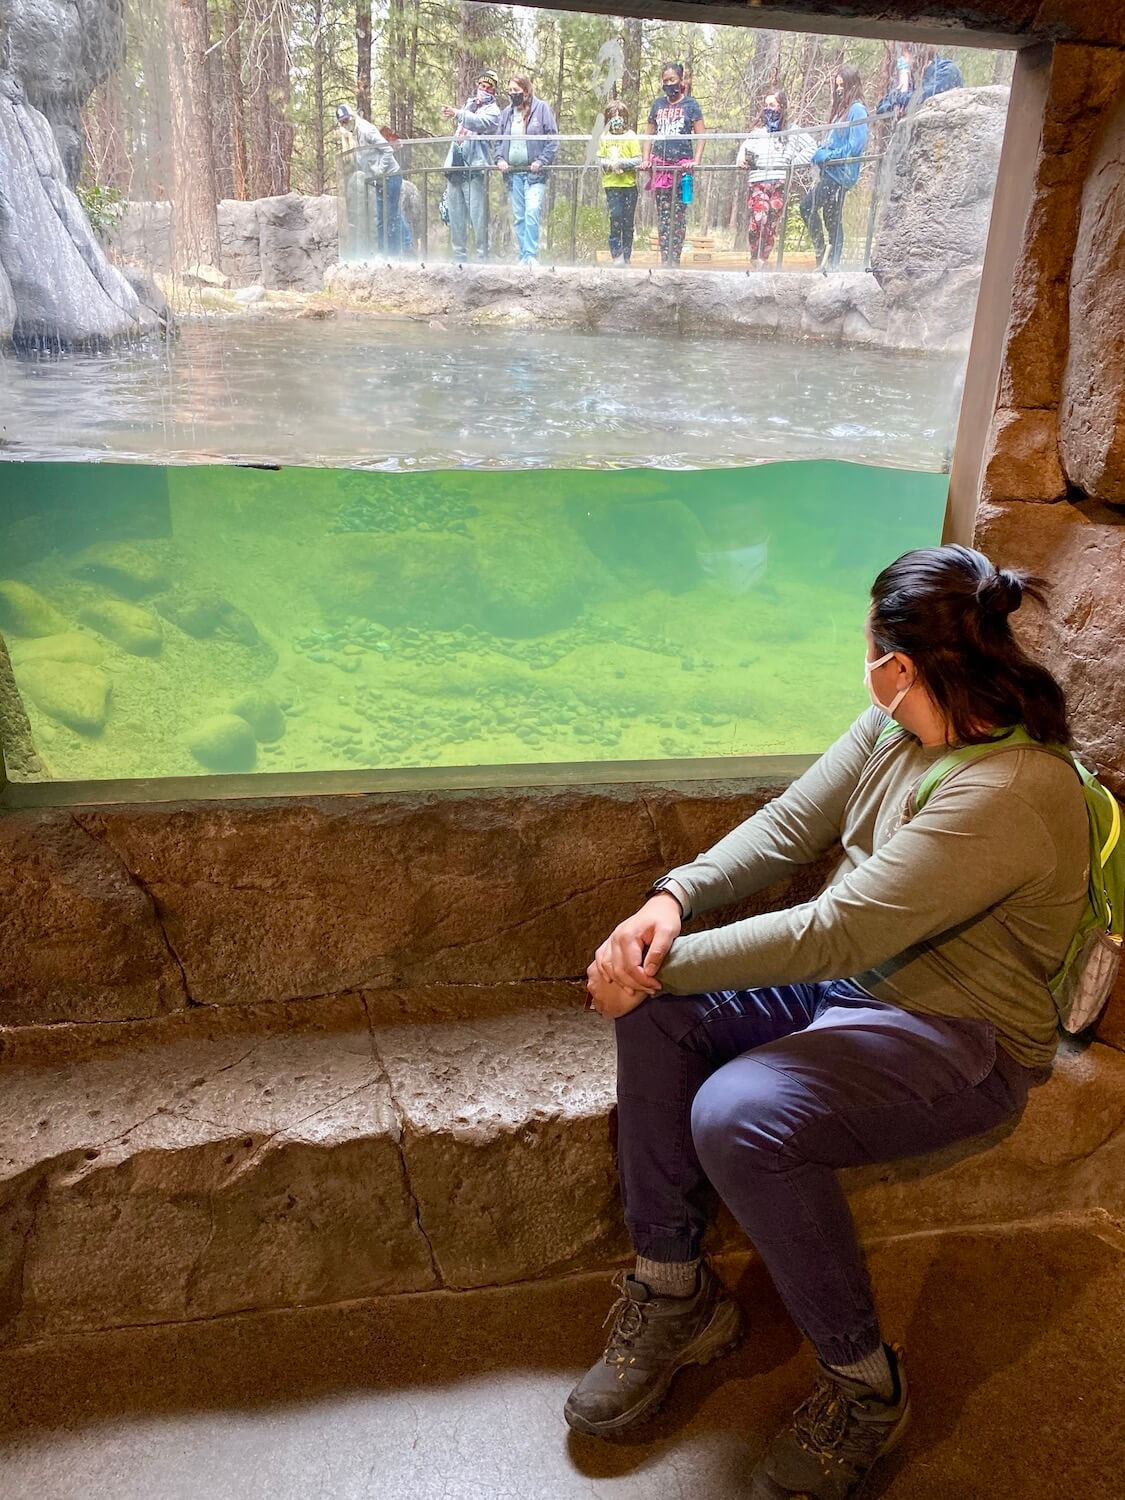 A man sits on a step while looking out into the water pool with otters swimming in the distance.  Other spectators are outside above the water looking into the pool. This installment is located at the High Desert Museum in Central Oregon.